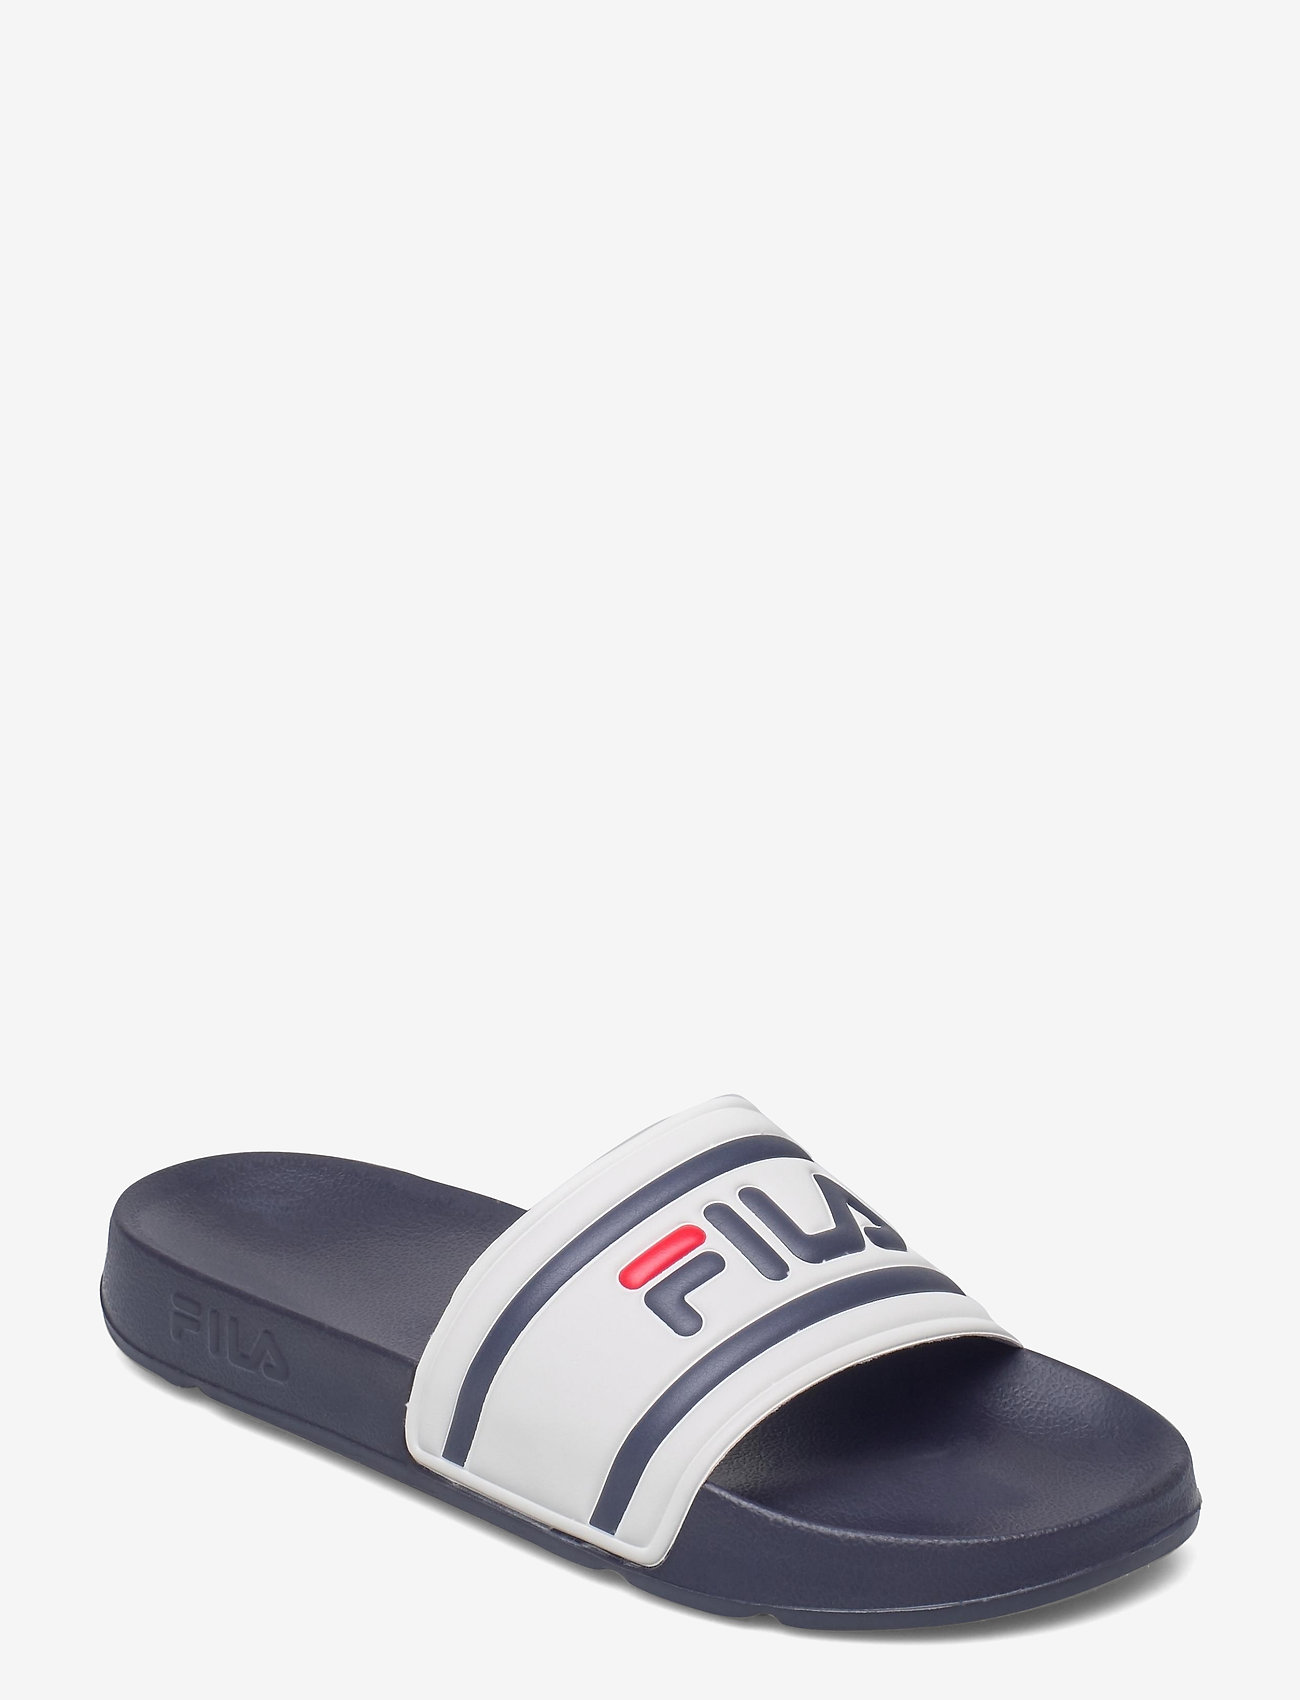 FILA - Morro Bay slipper 2.0 - pool sliders - white / fila navy - 0